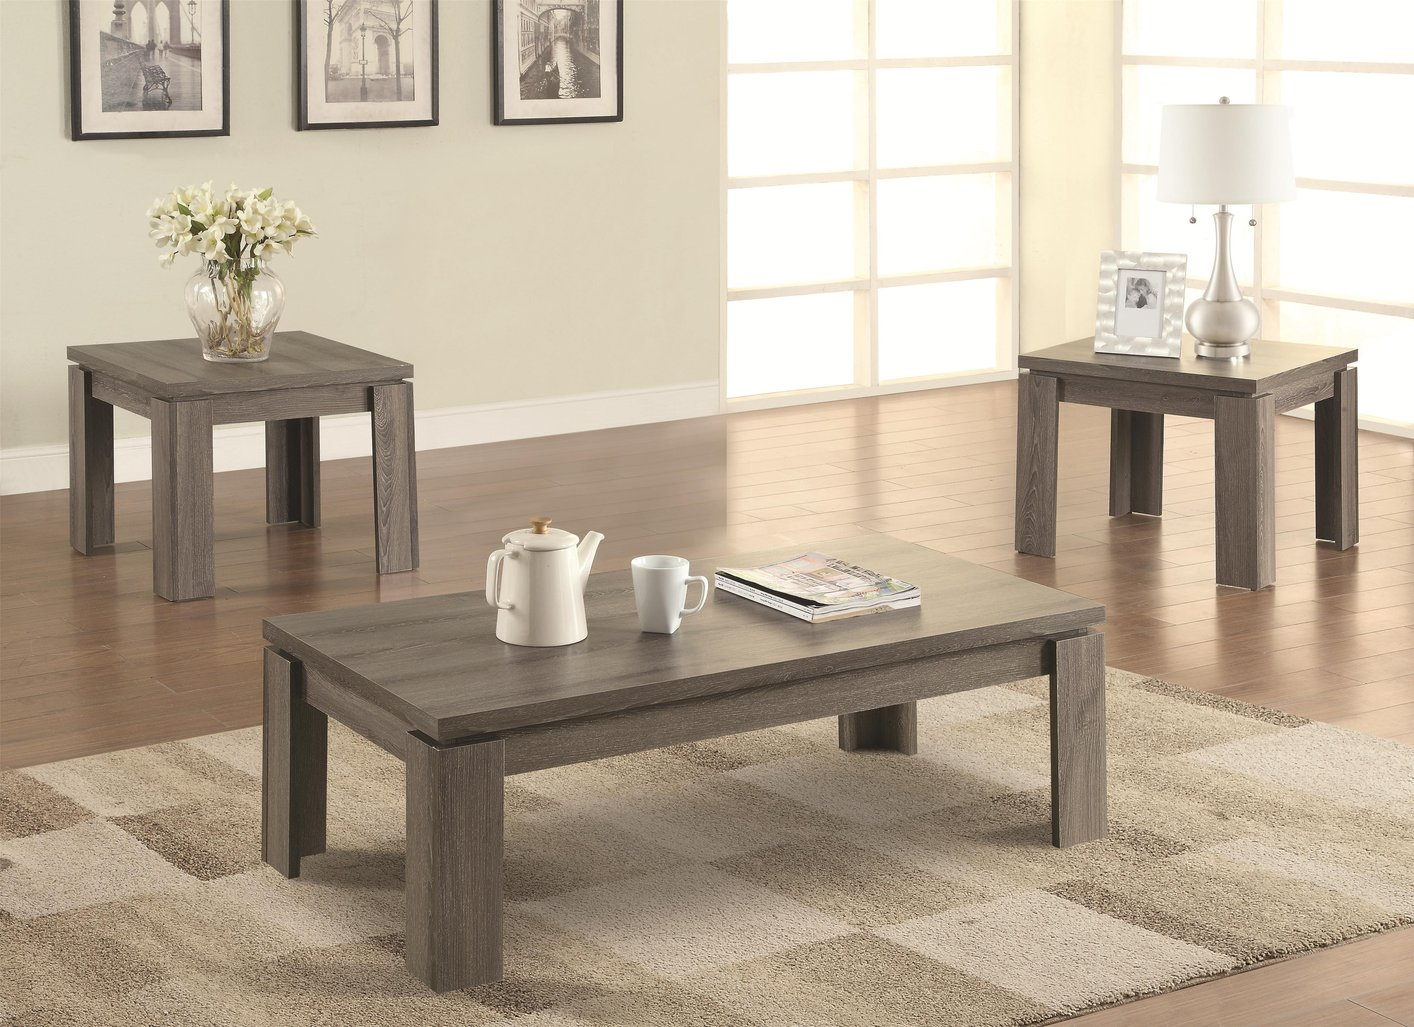 Grey Wood Coffee Table Set Steal A Sofa Furniture Outlet Los